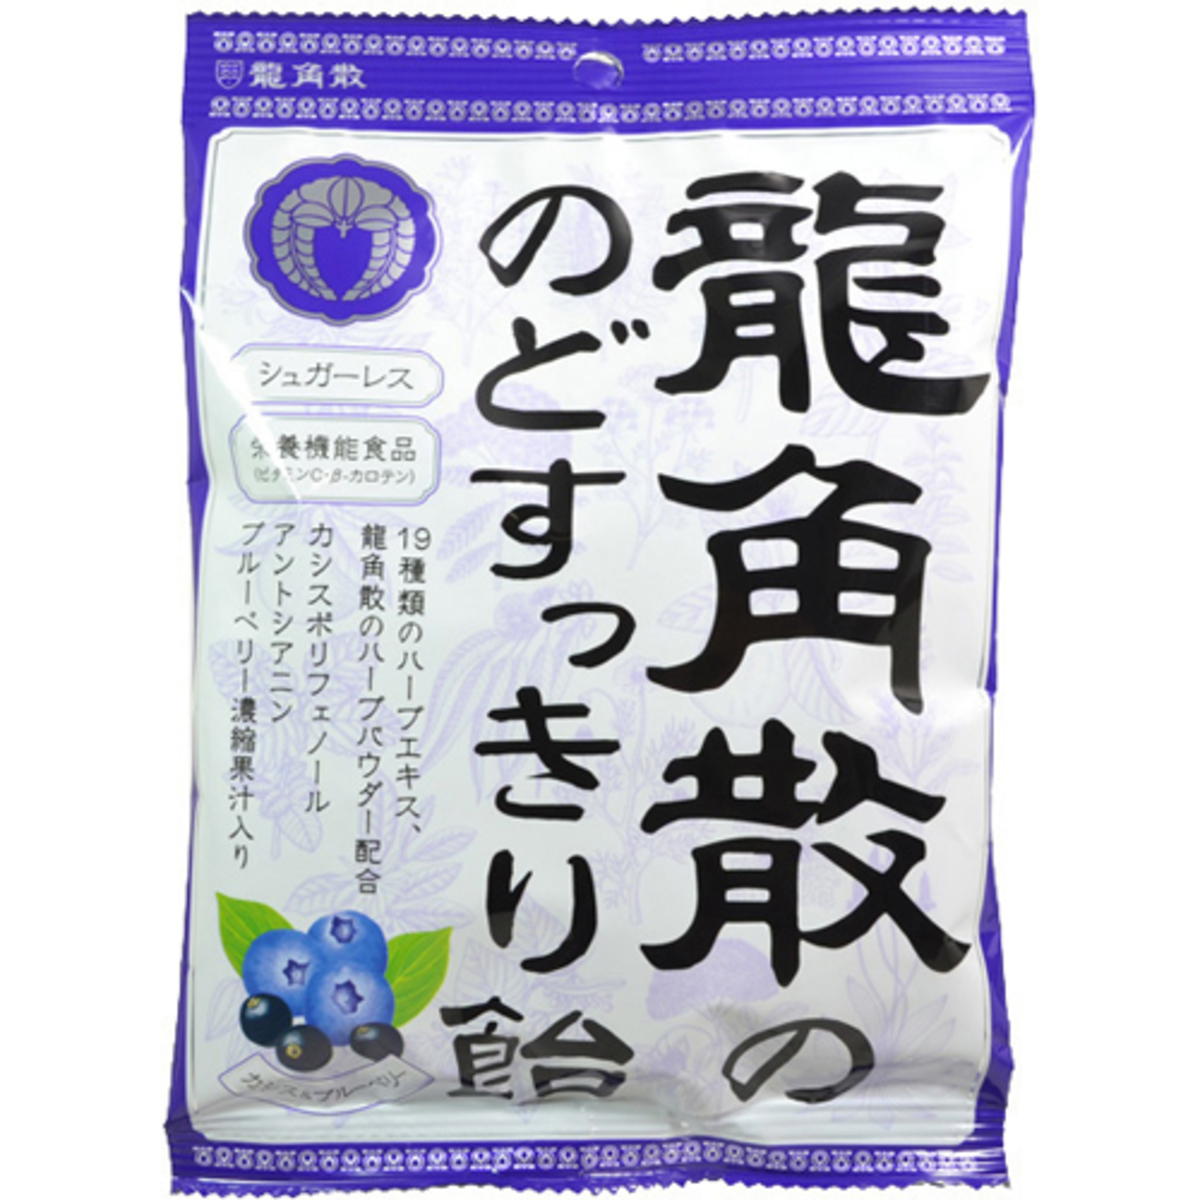 Ryukakusan Cassis & blueberry flavored Medicated Drops Candy for Sore Throat 75g